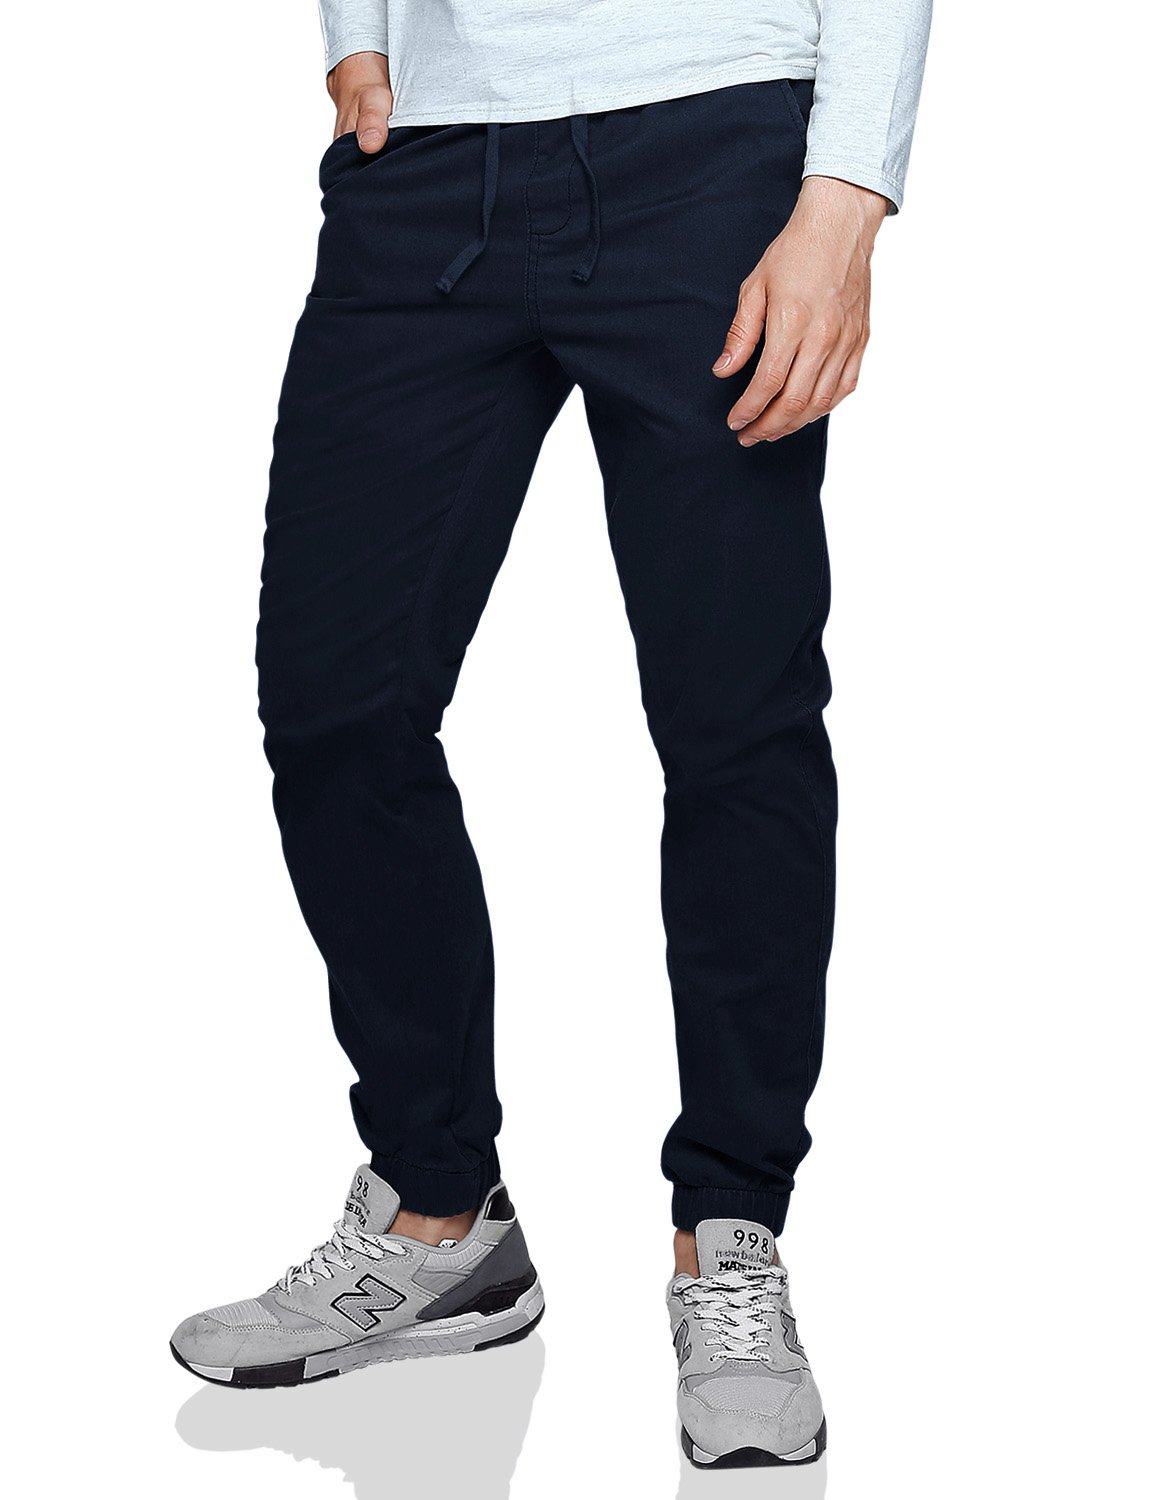 Match Men's Loose Fit Chino Washed Jogger Pant (38W x 32L, 6535 Blue)